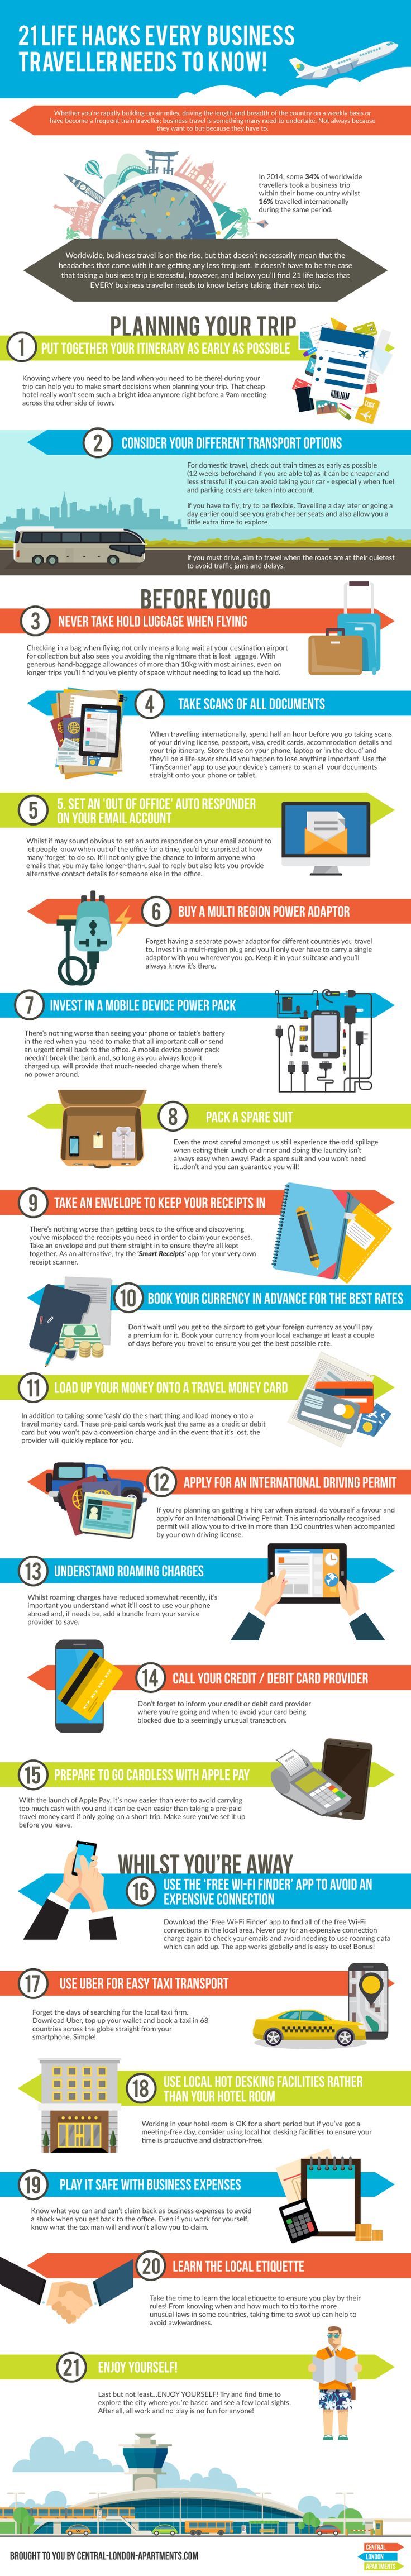 21 Life Hacks Every Business Traveller Needs To Know [Infographic]